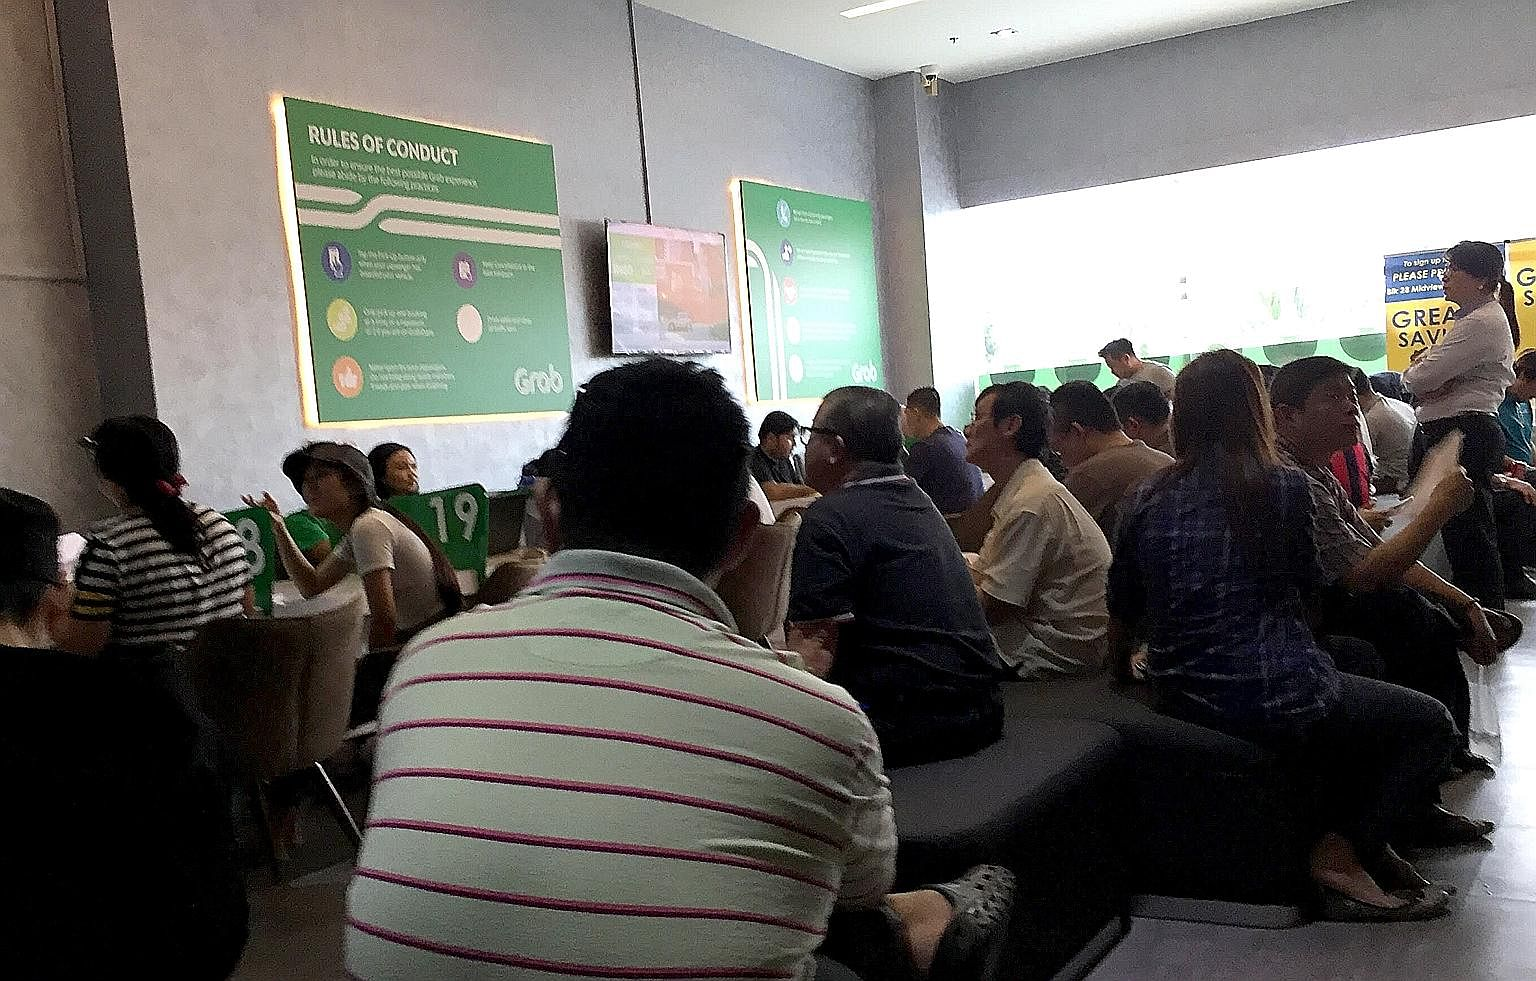 Grab's office in Sin Ming Lane was packed yesterday afternoon with many Comfort and CityCab drivers. At about 2.50pm, the queue number was 473.